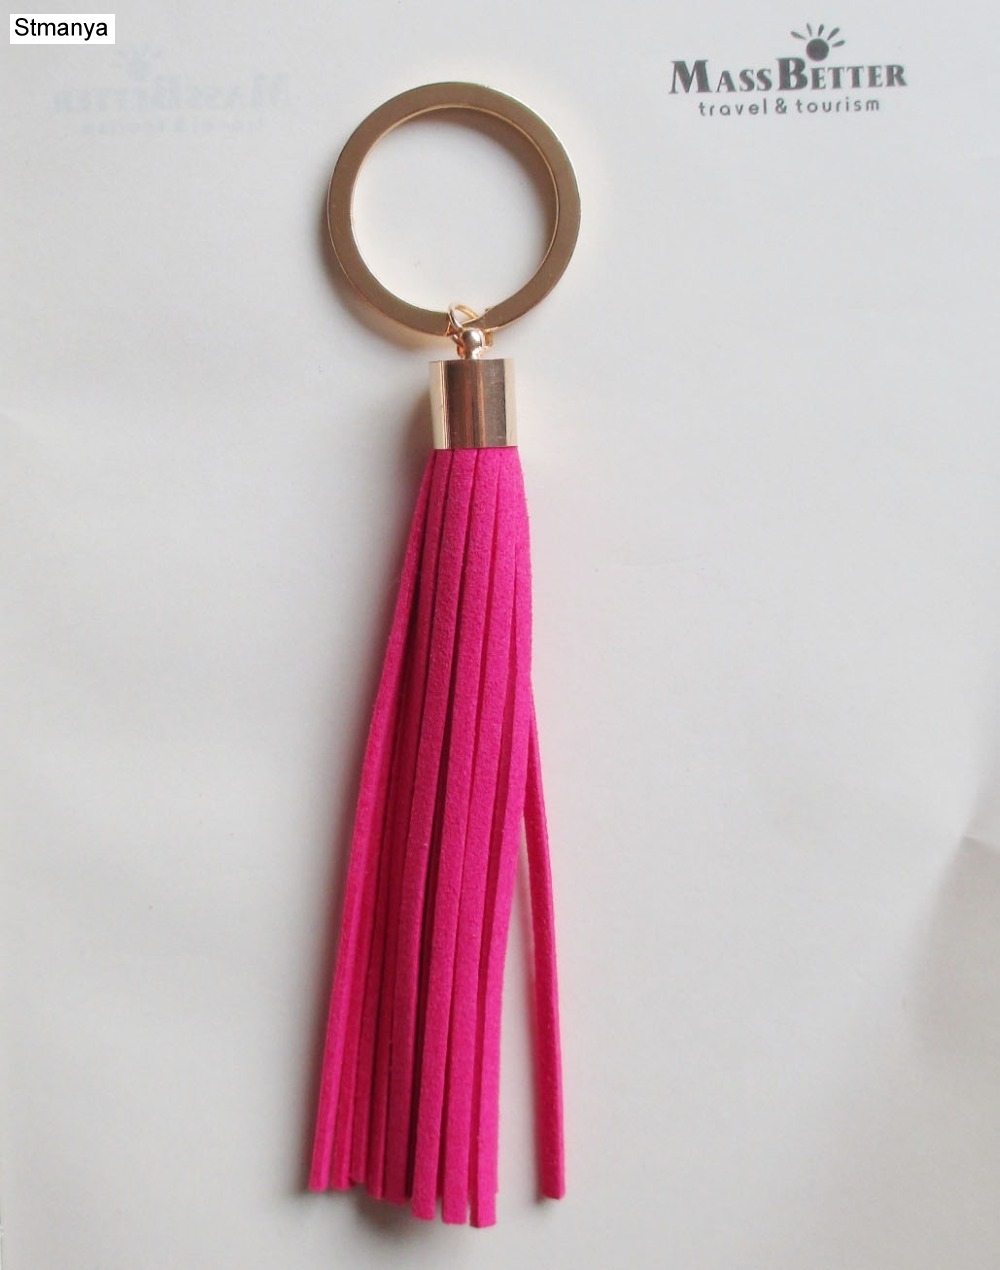 Fashion Tassel Key Chain Women Bag Charm Accessories Tassel Key Holder Korean Velvet Leather Car Key Ring Gift Jewelry 17014